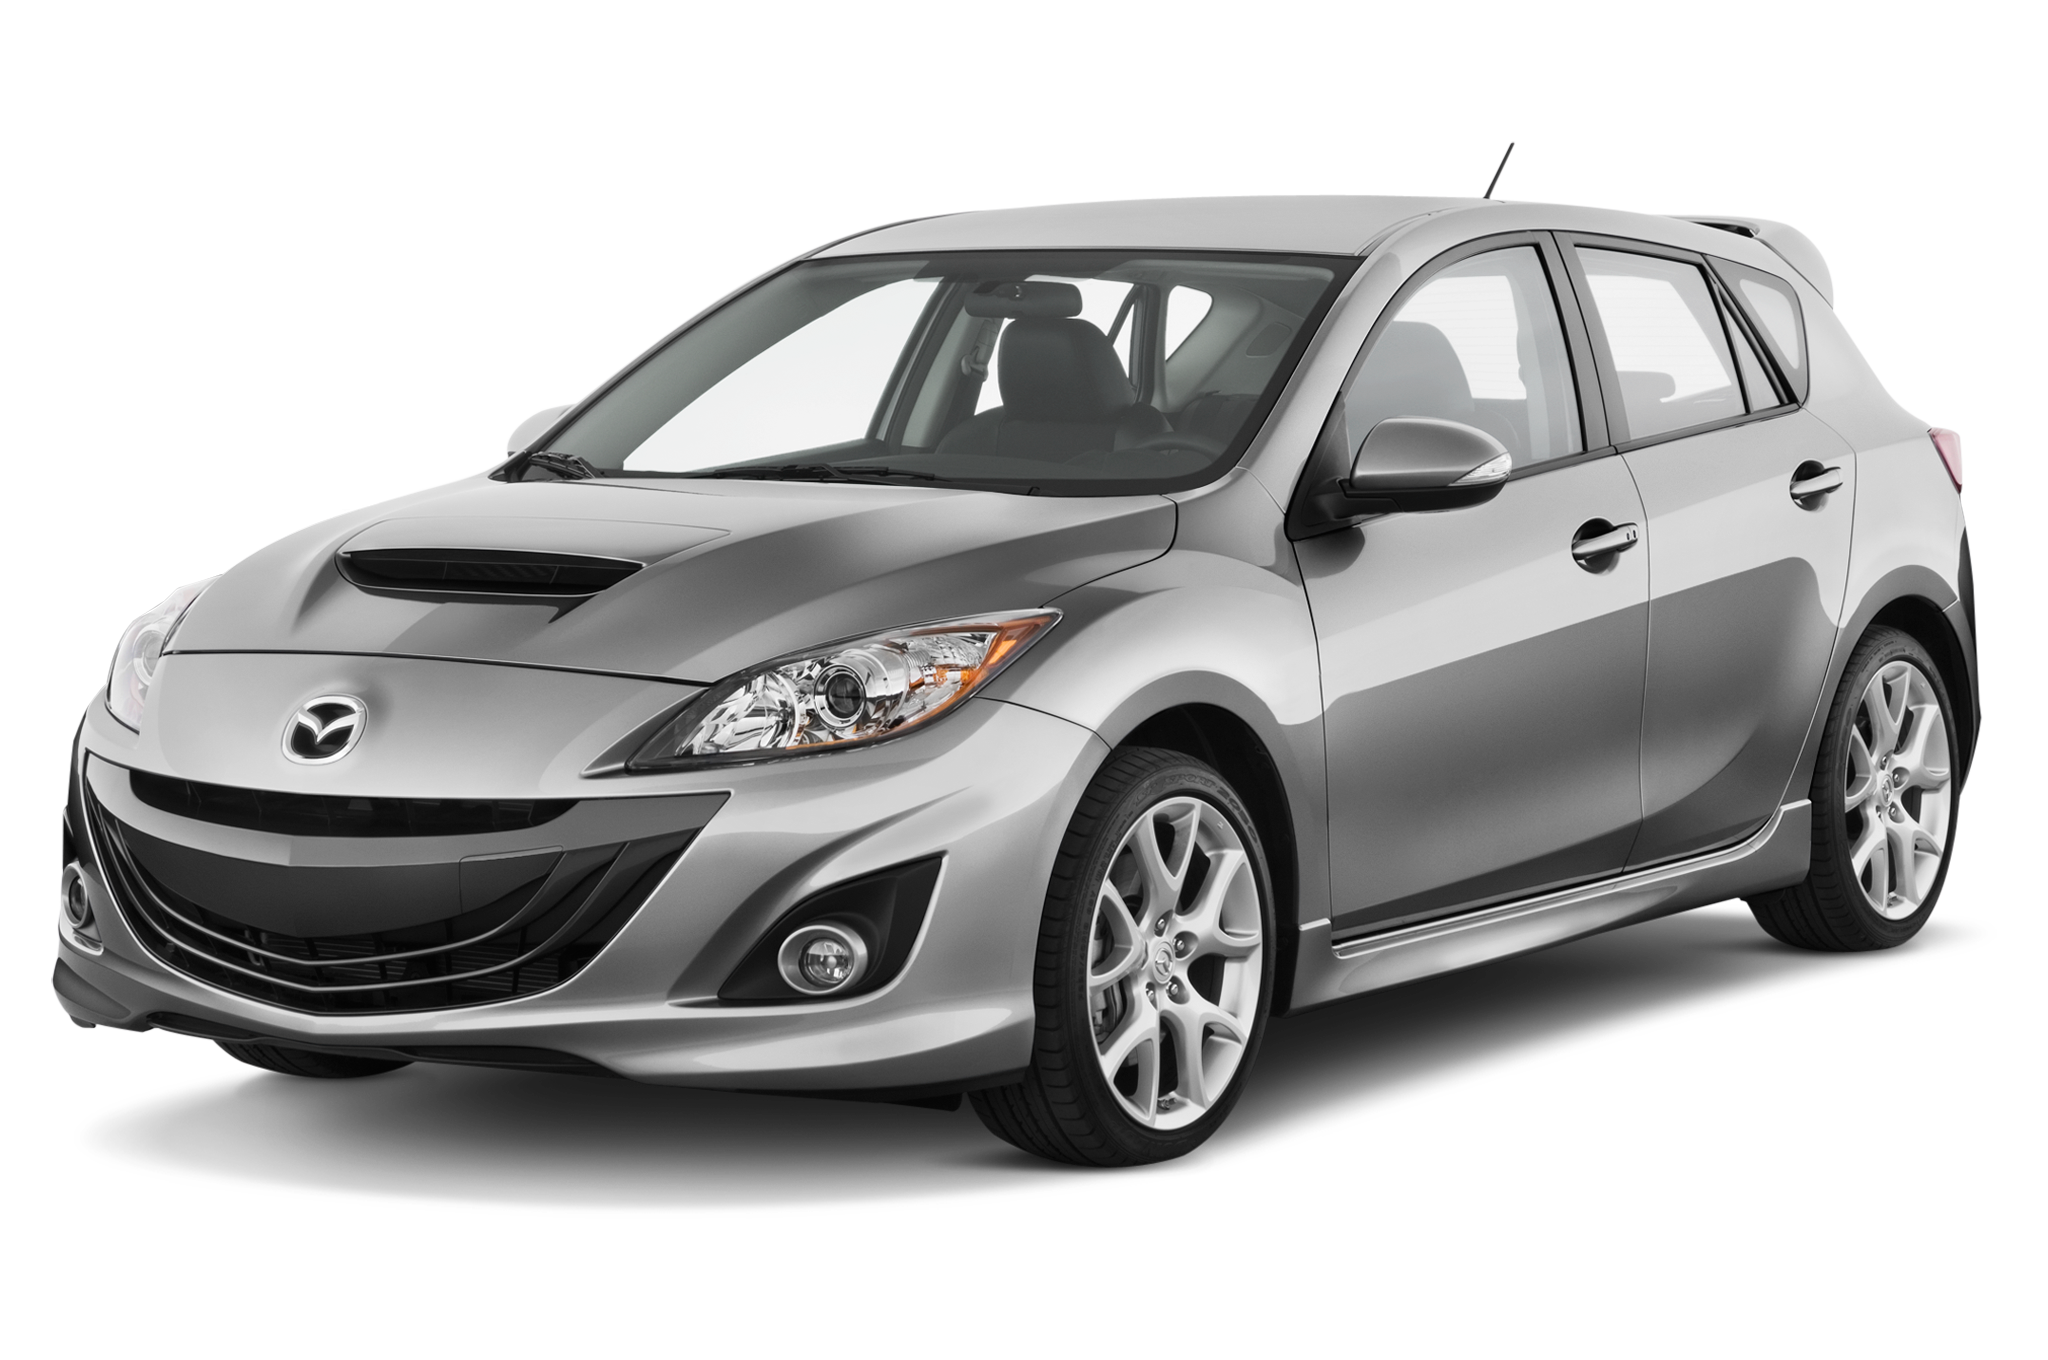 2010 Mazda MAZDA3  Kelley Blue Book  Kbbcom